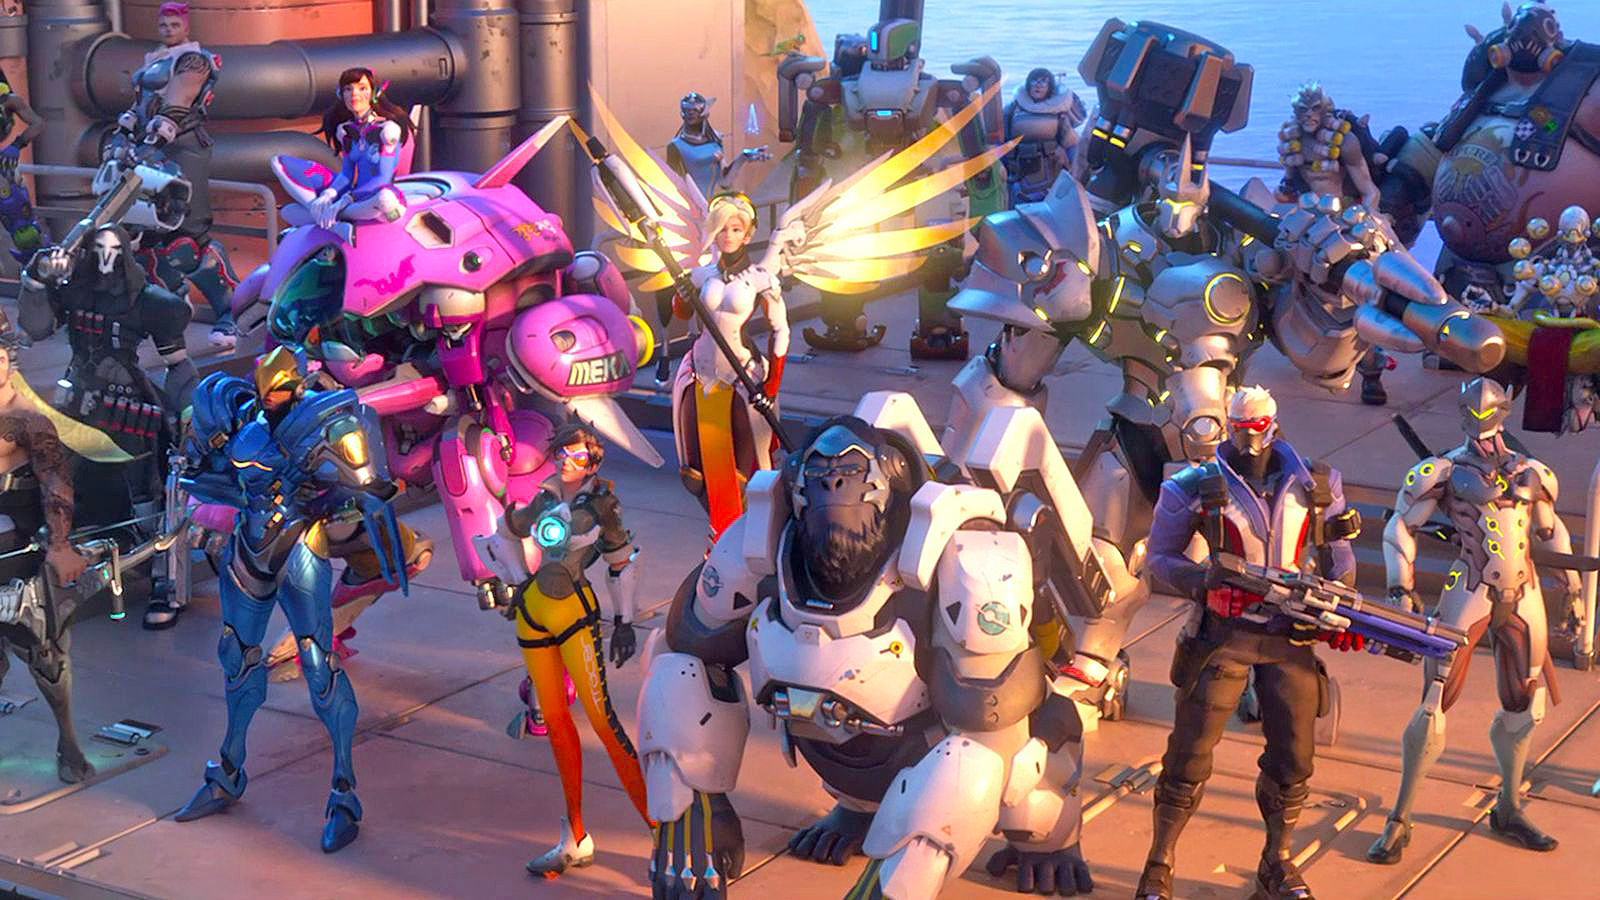 Overwatch's next Hero isn't likely to be Doomfist